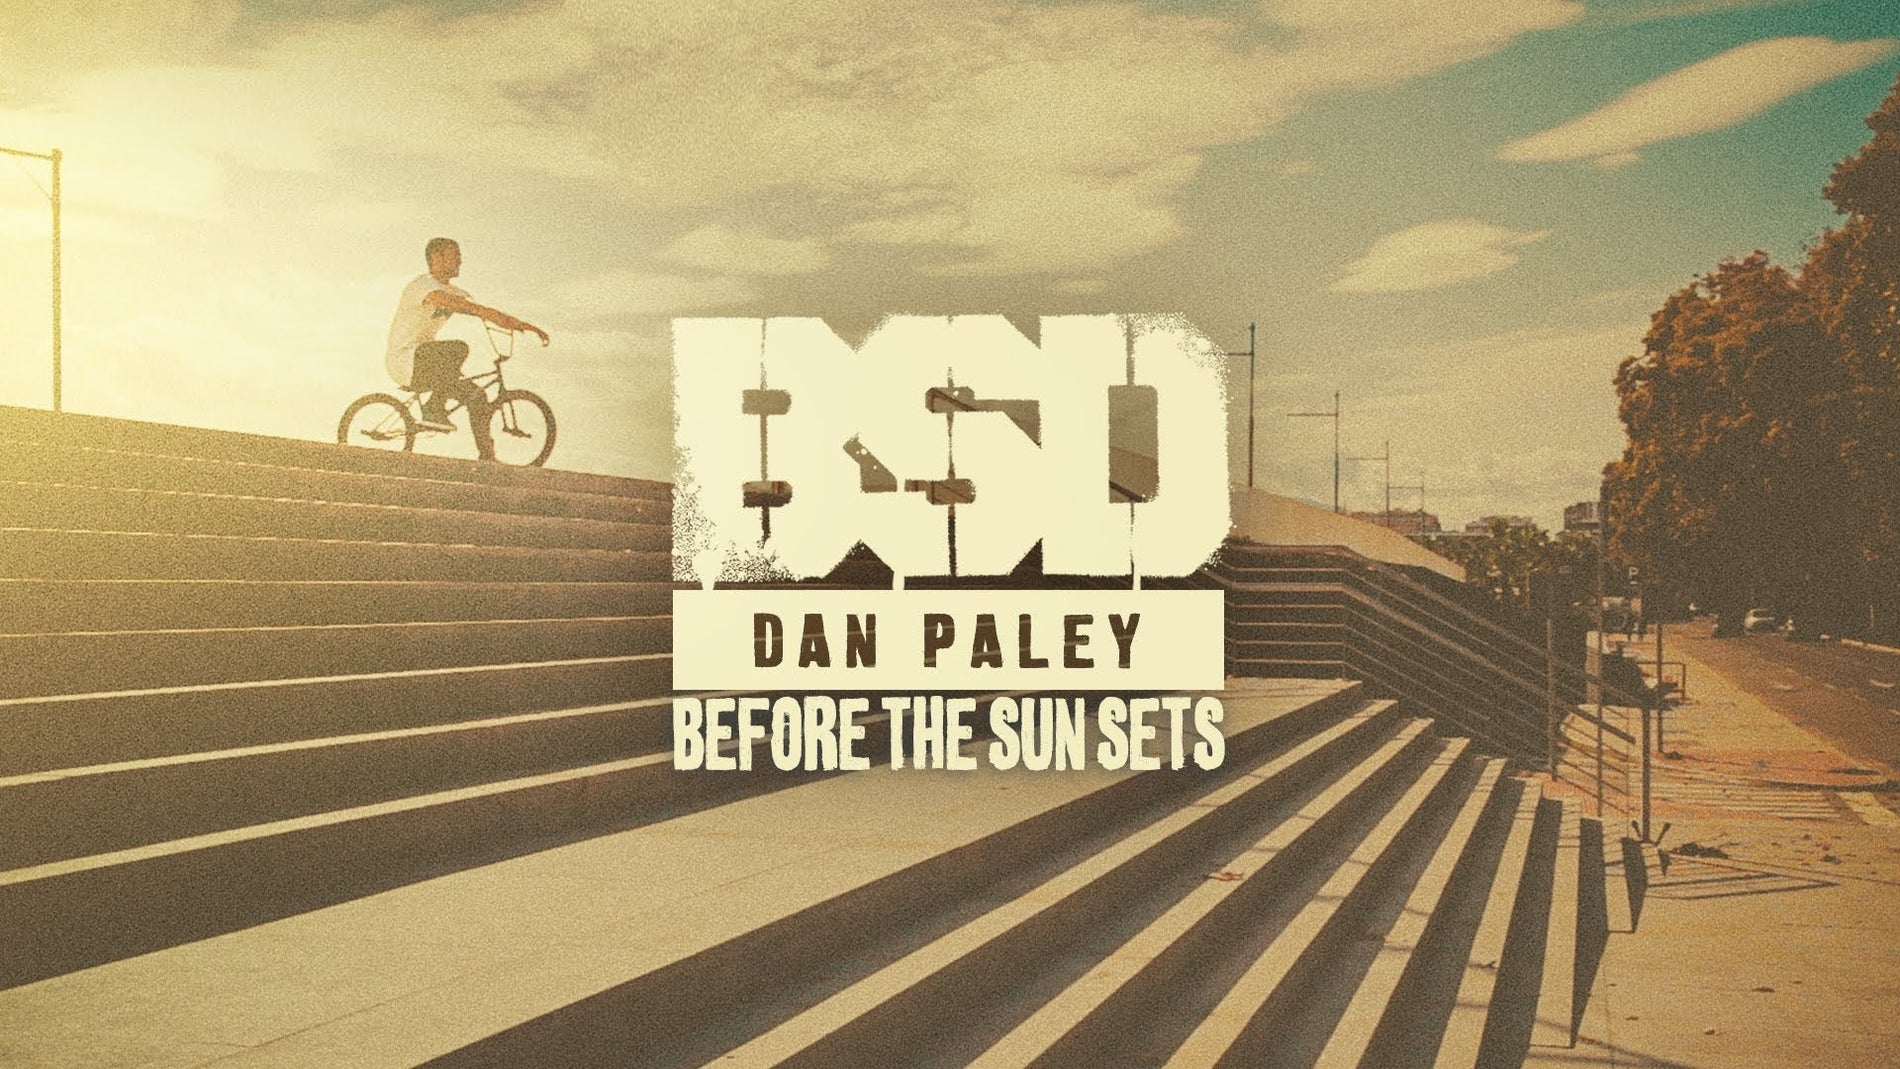 Dan Paley - Before the Sun Sets